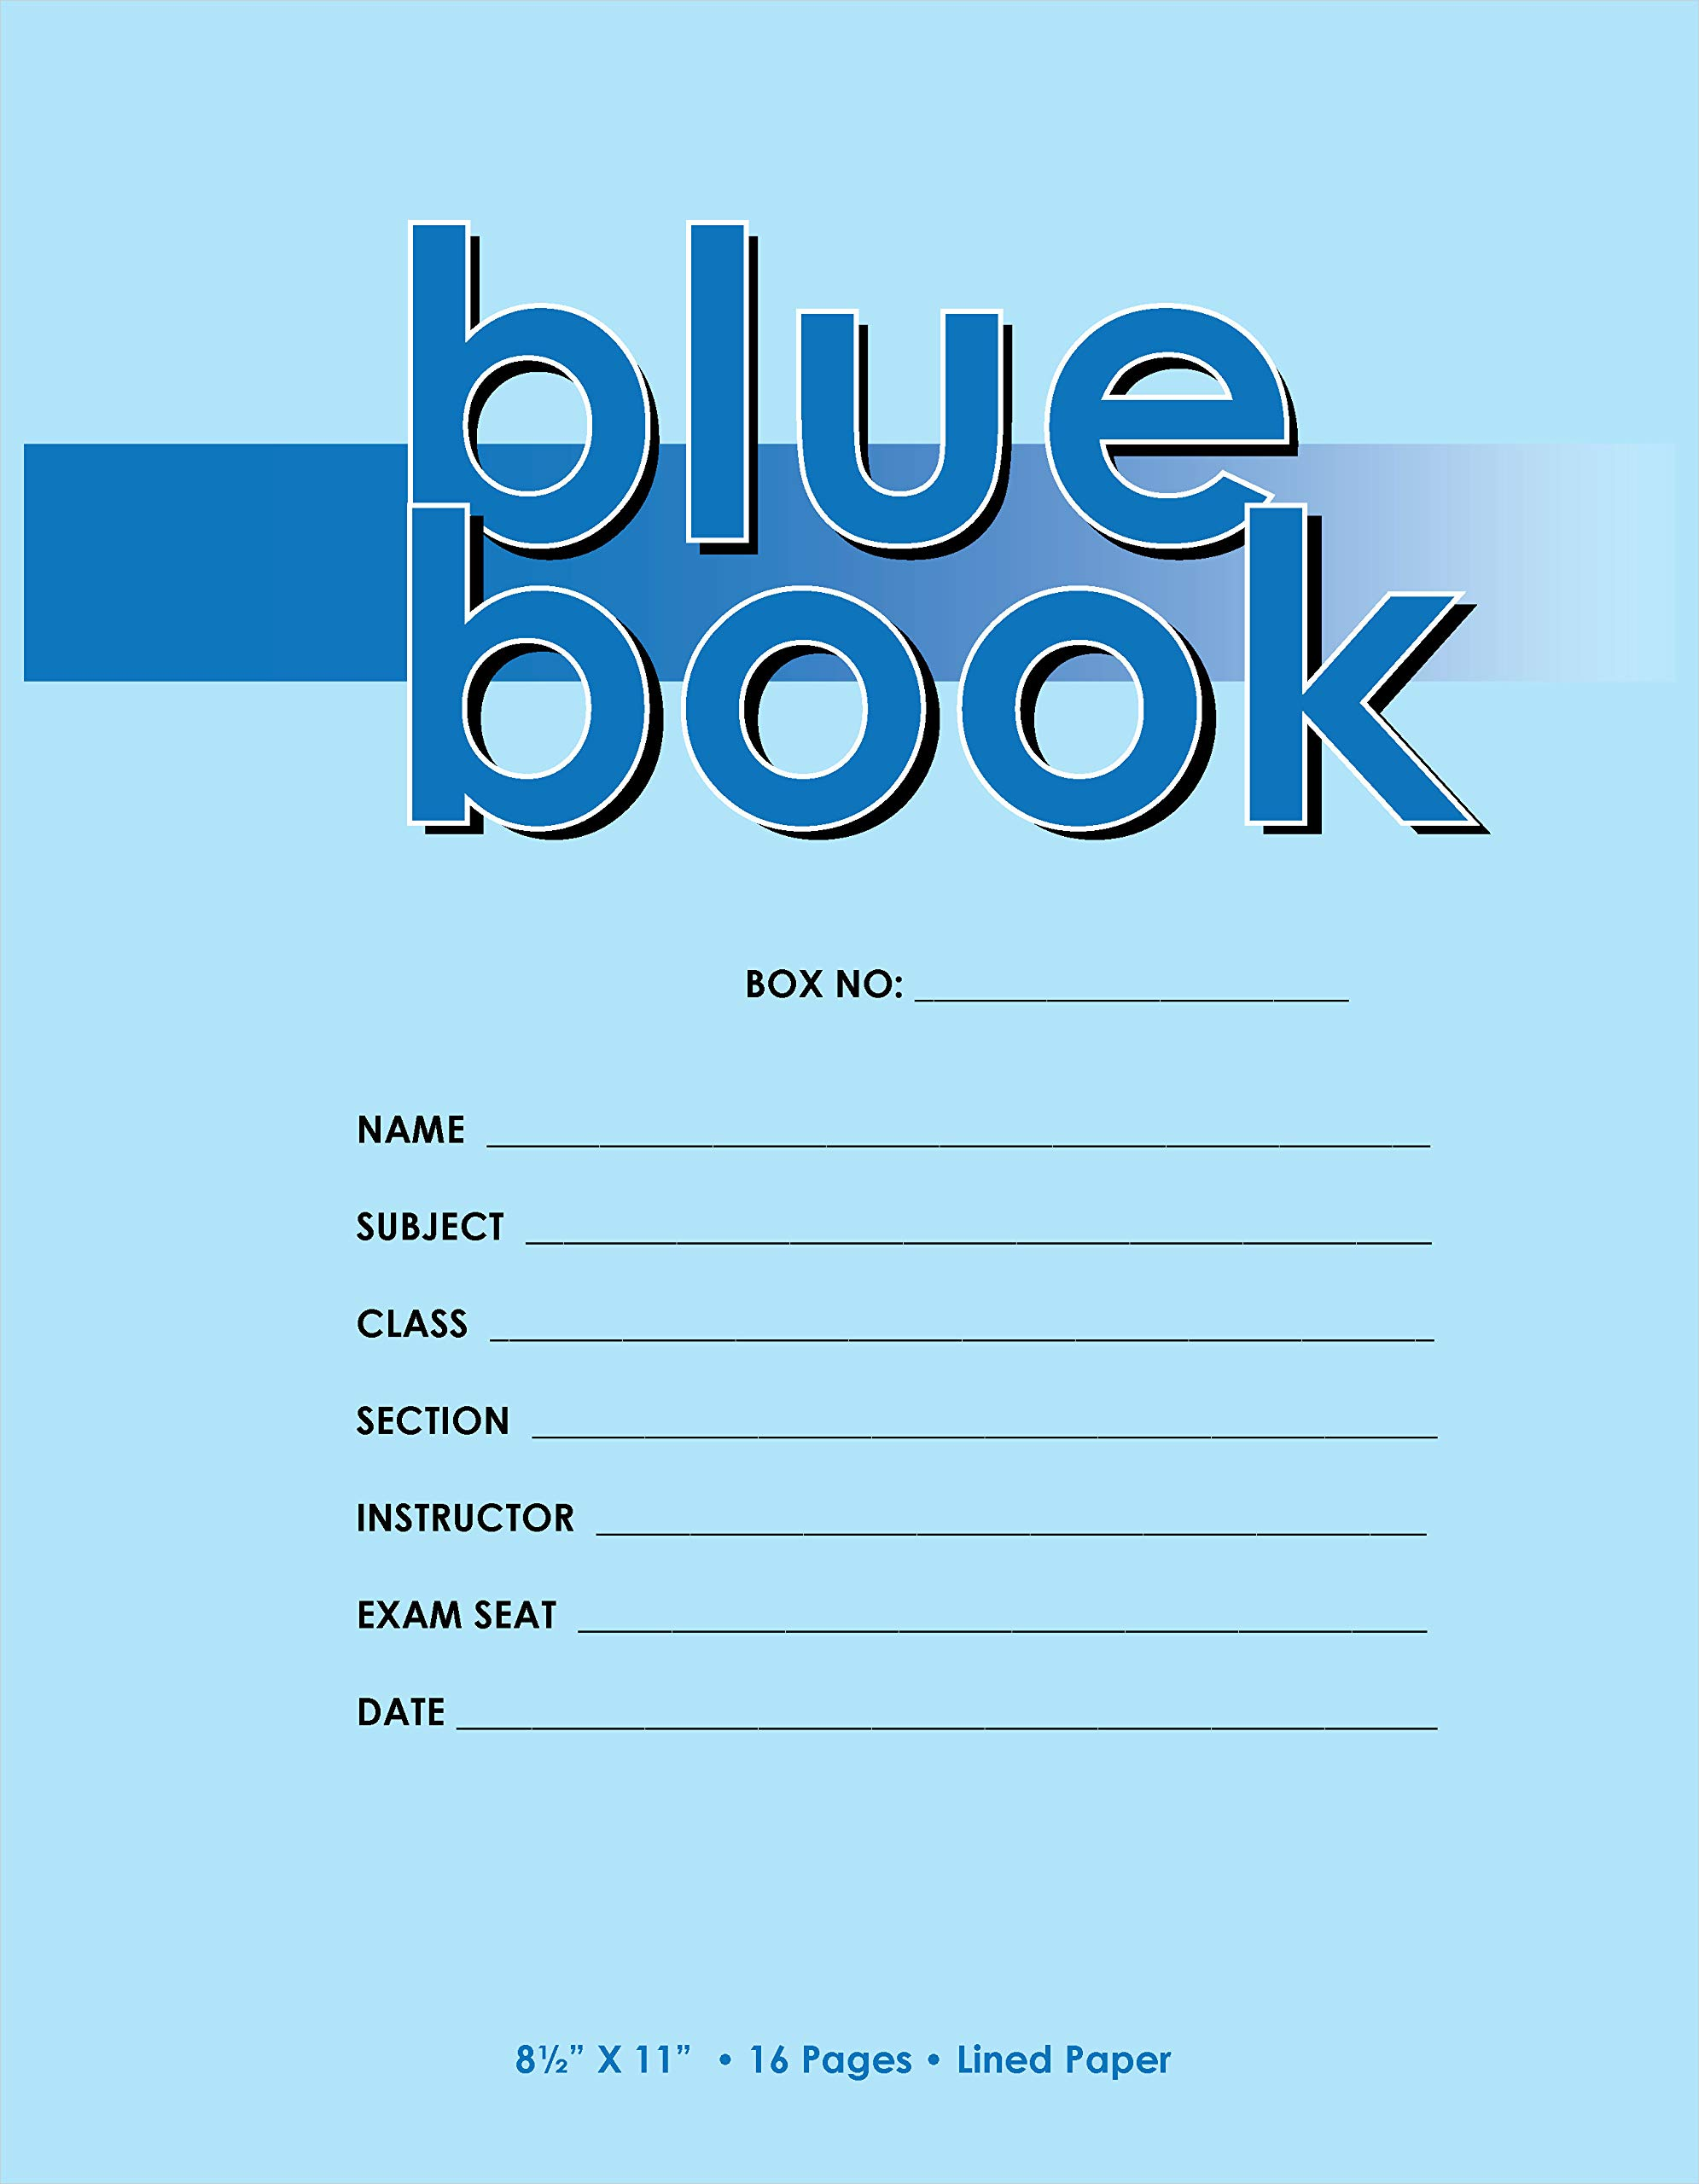 Buybazinga Exam Book 8.5 x 11 Inches 6 Sheets/12 Pages College Ruled Pack of 50 Books (11'' x 8.5'', Blue 6 sheets/12 pages, Pack of 100 Books) by Buybazinga